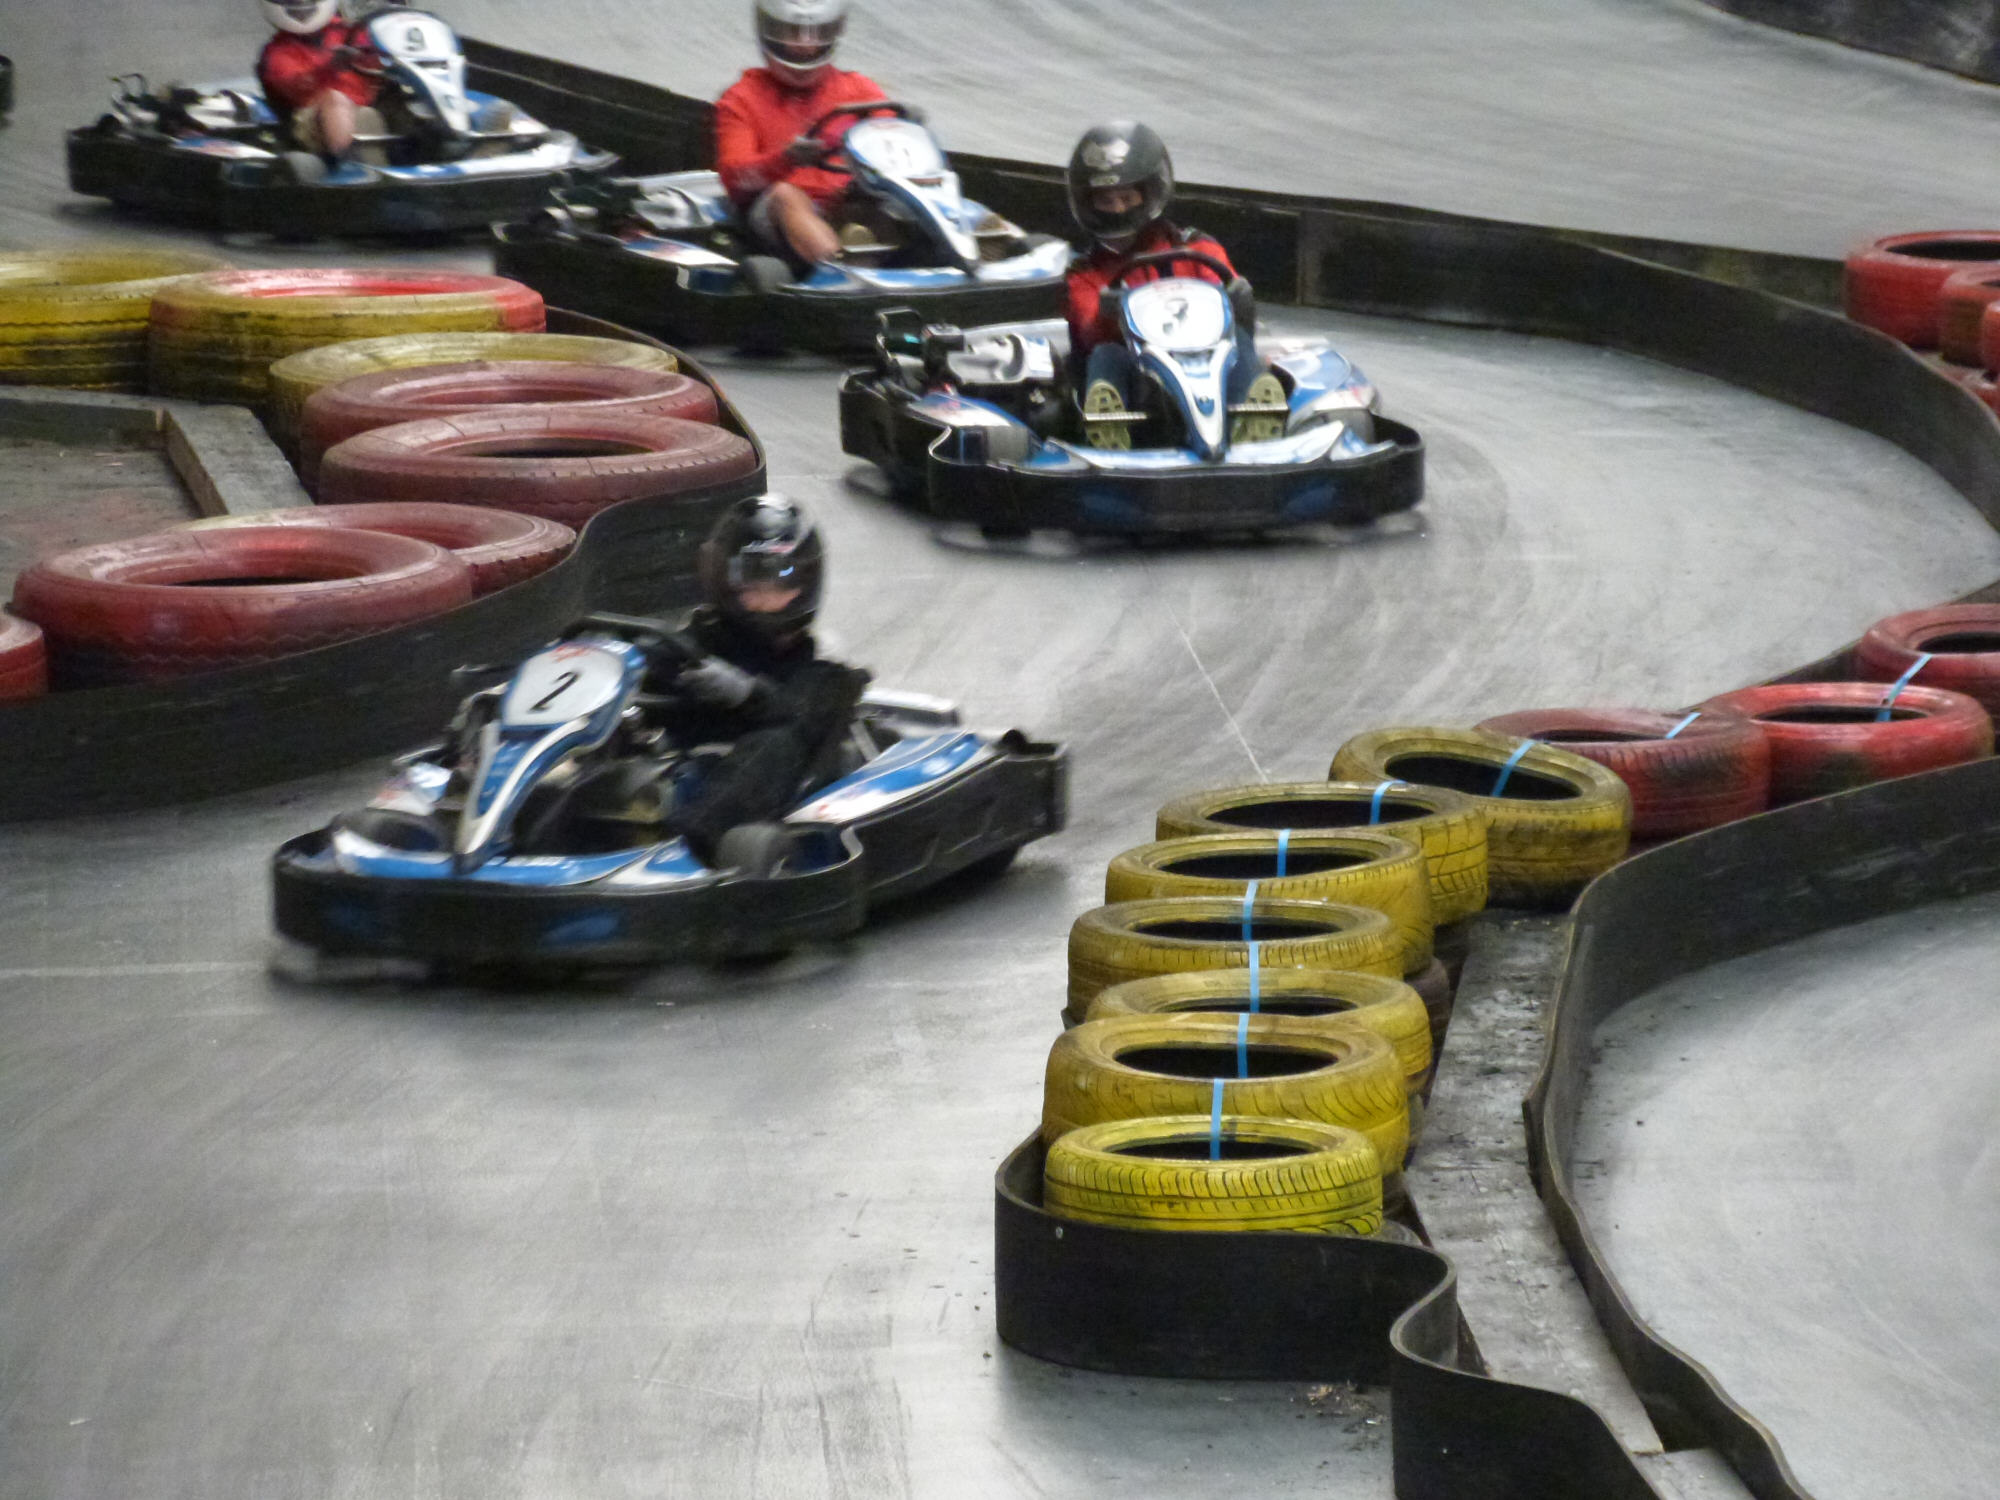 Go cart in action 2